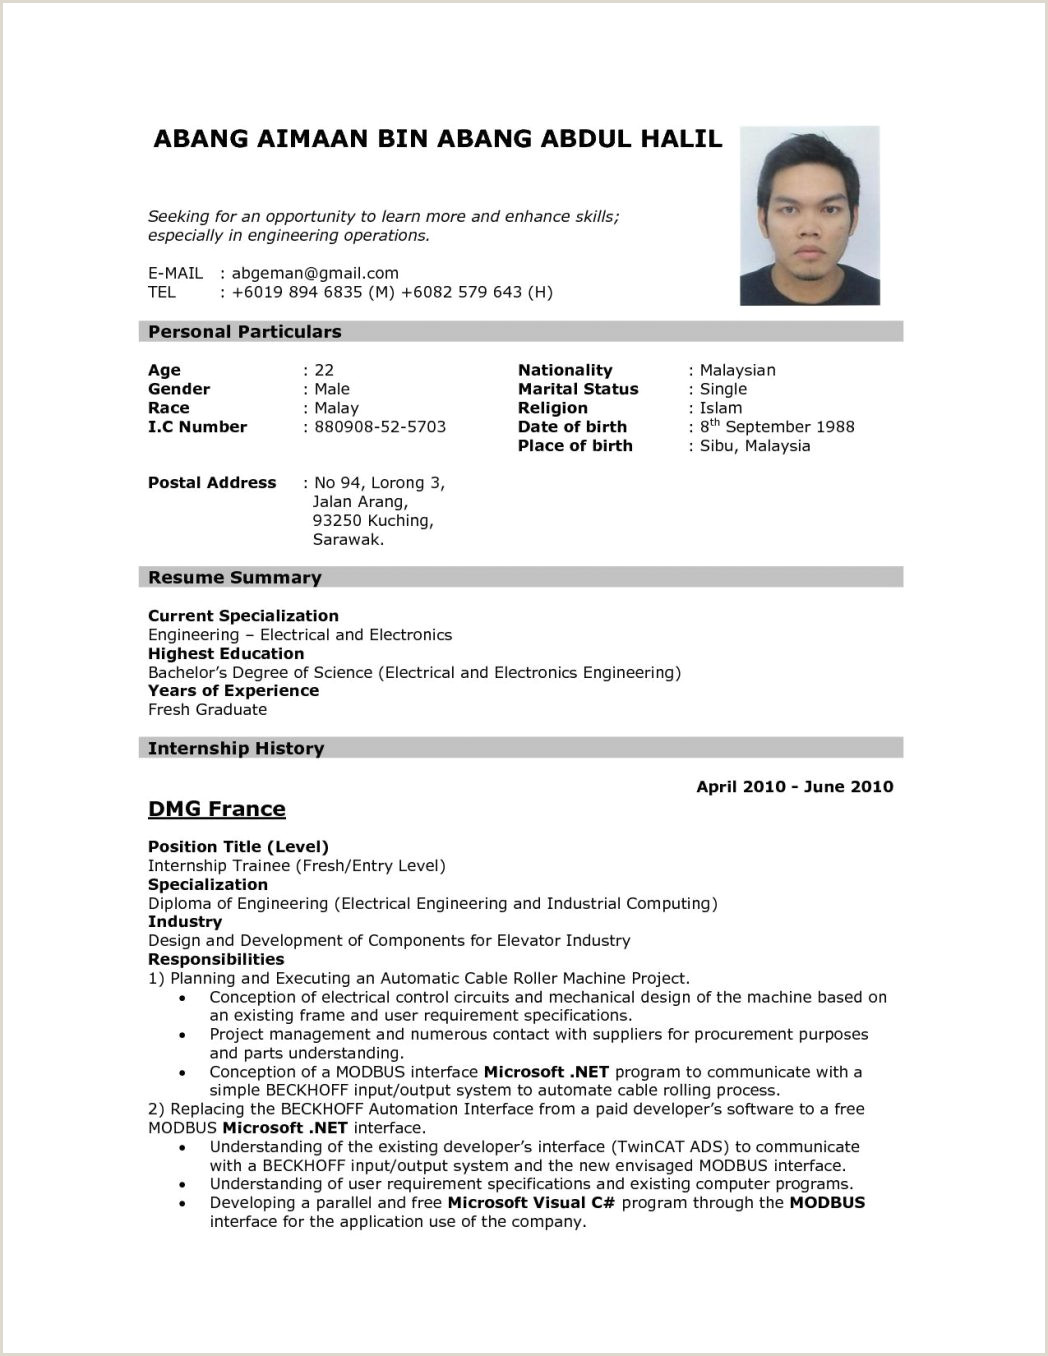 Fresher Resume Mca format format Sample It 313b9bba954c3d Bfb5135cae22